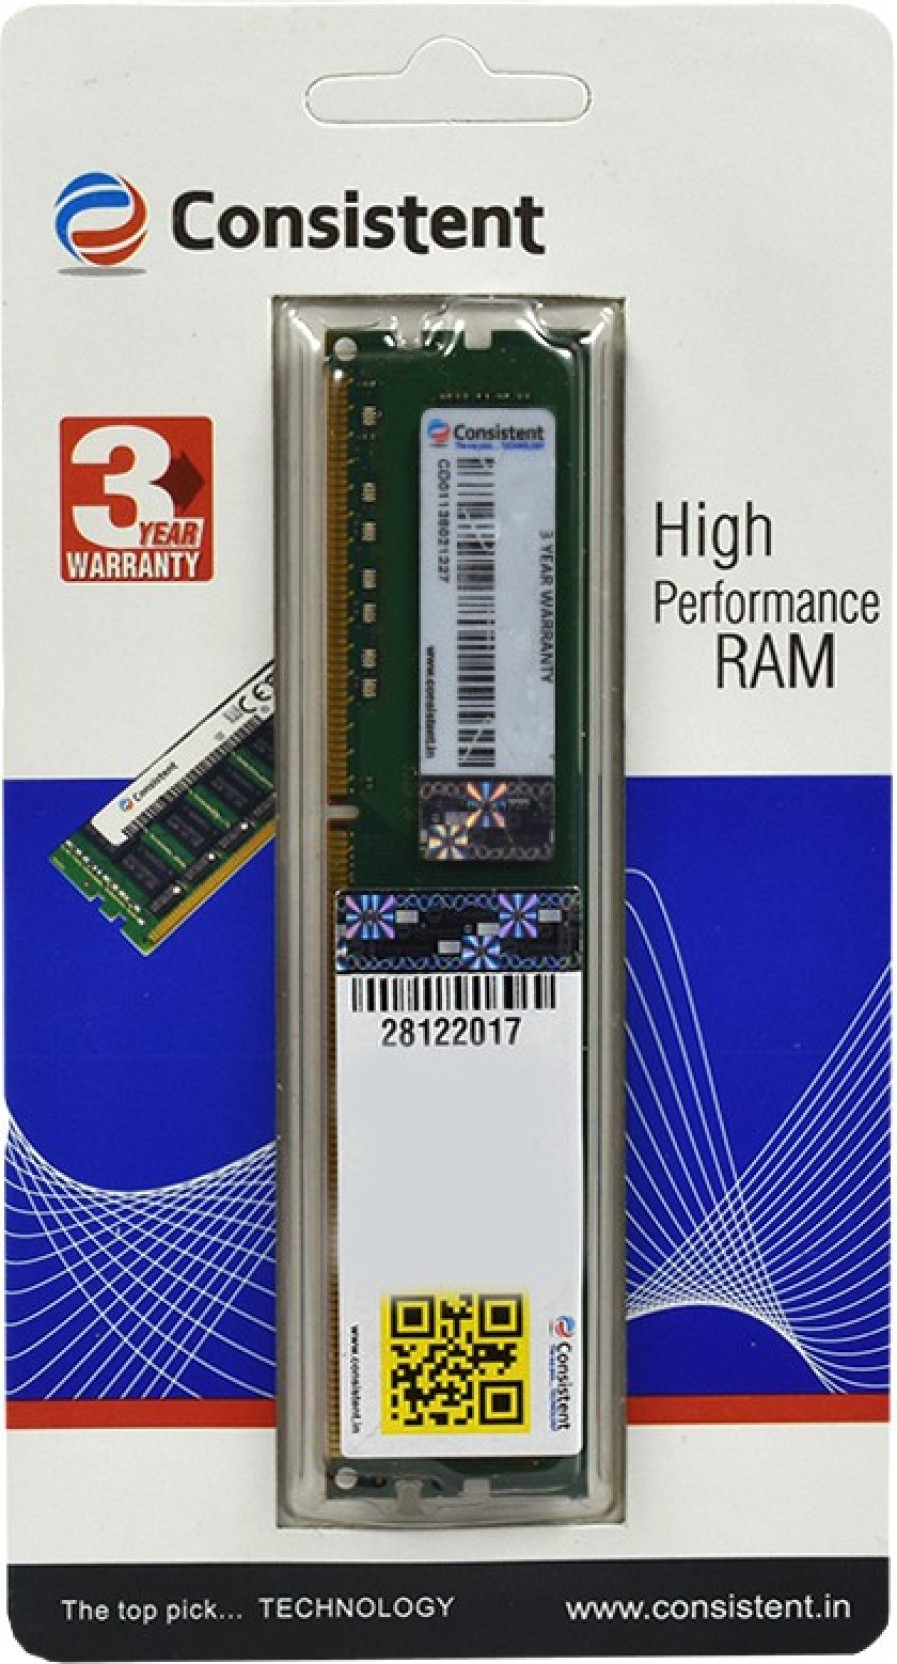 Consistent Ddr Gddr3 2 Gb Single Channel Pc 2gb Ddr3 Ram Memori Ddr2 Pake Hedsink Add To Cart